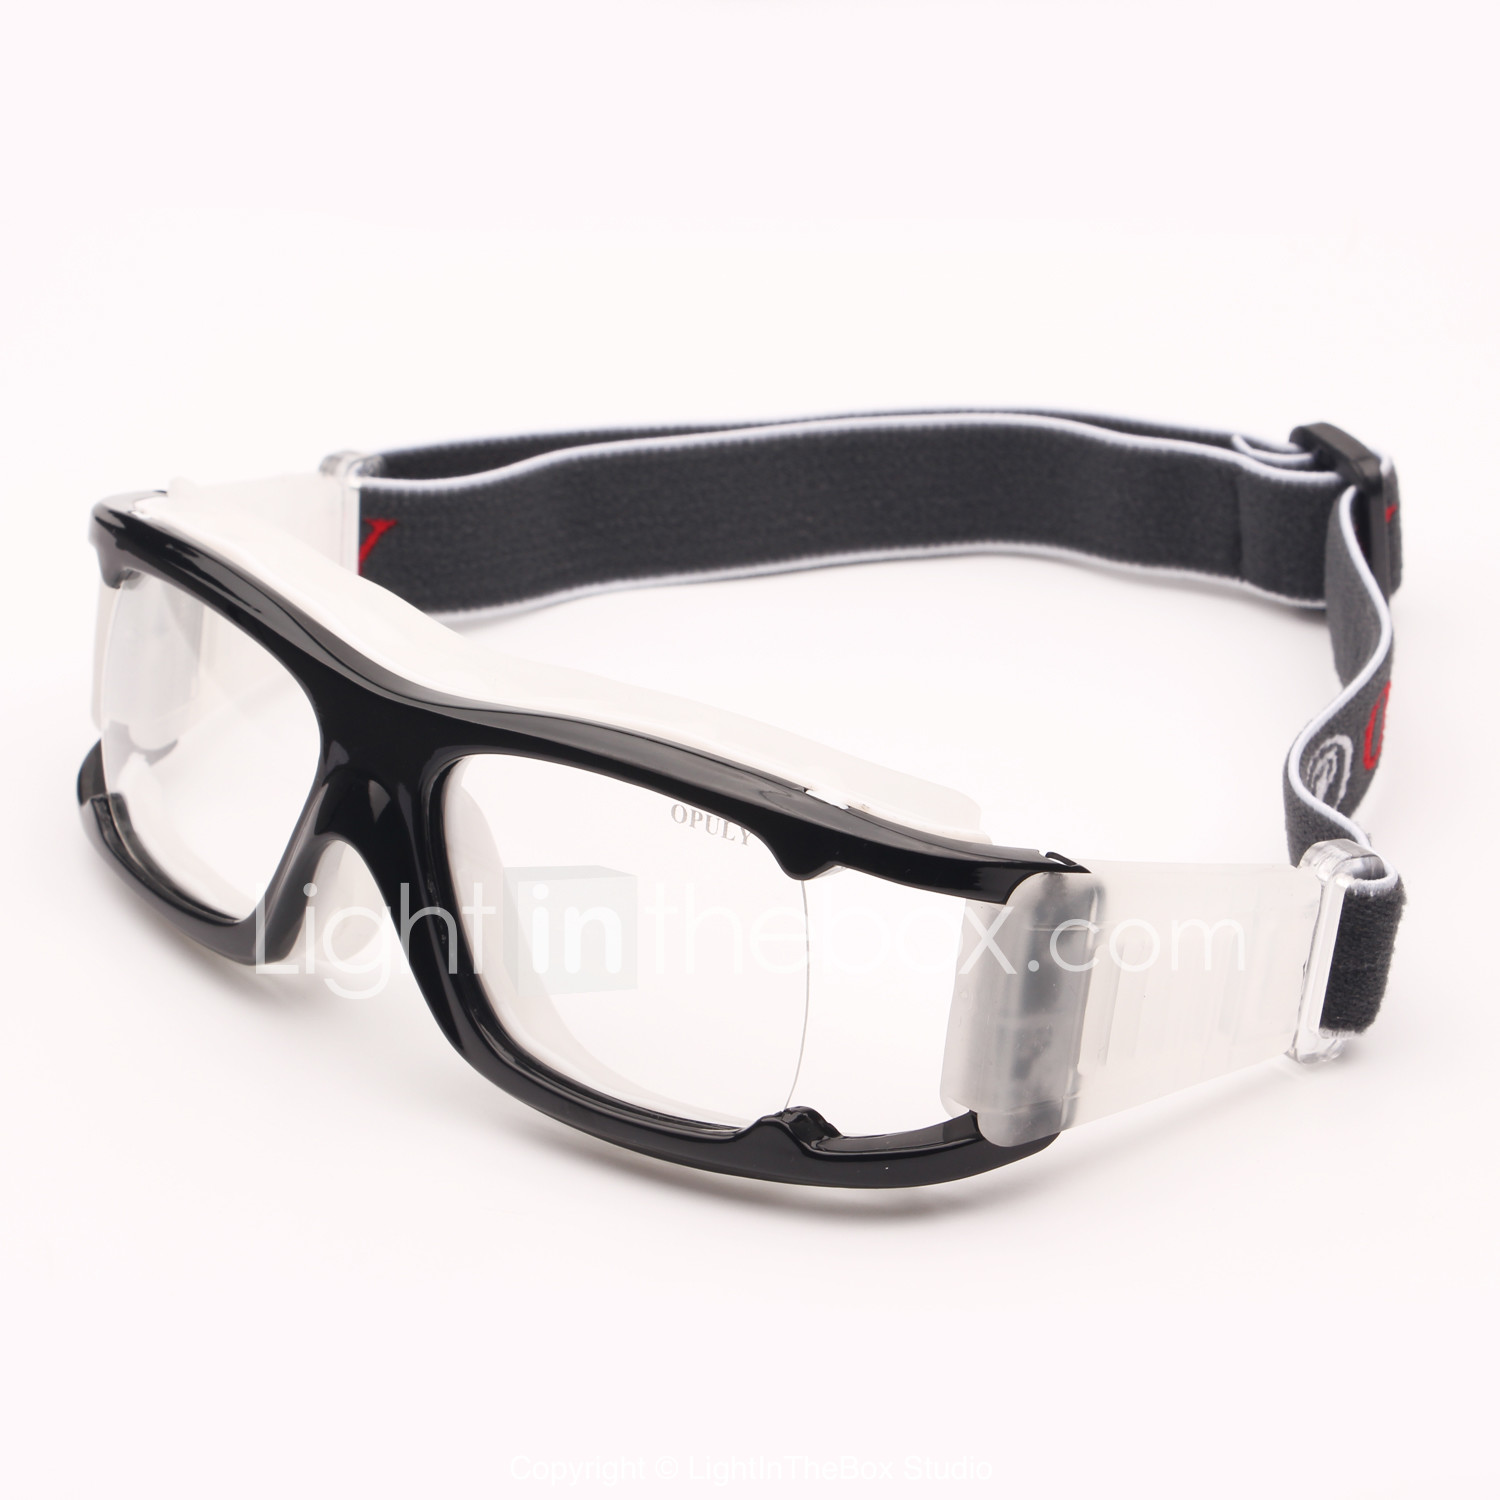 d9836b0c4b5 OPULY 029 Wearable Sports Glasses